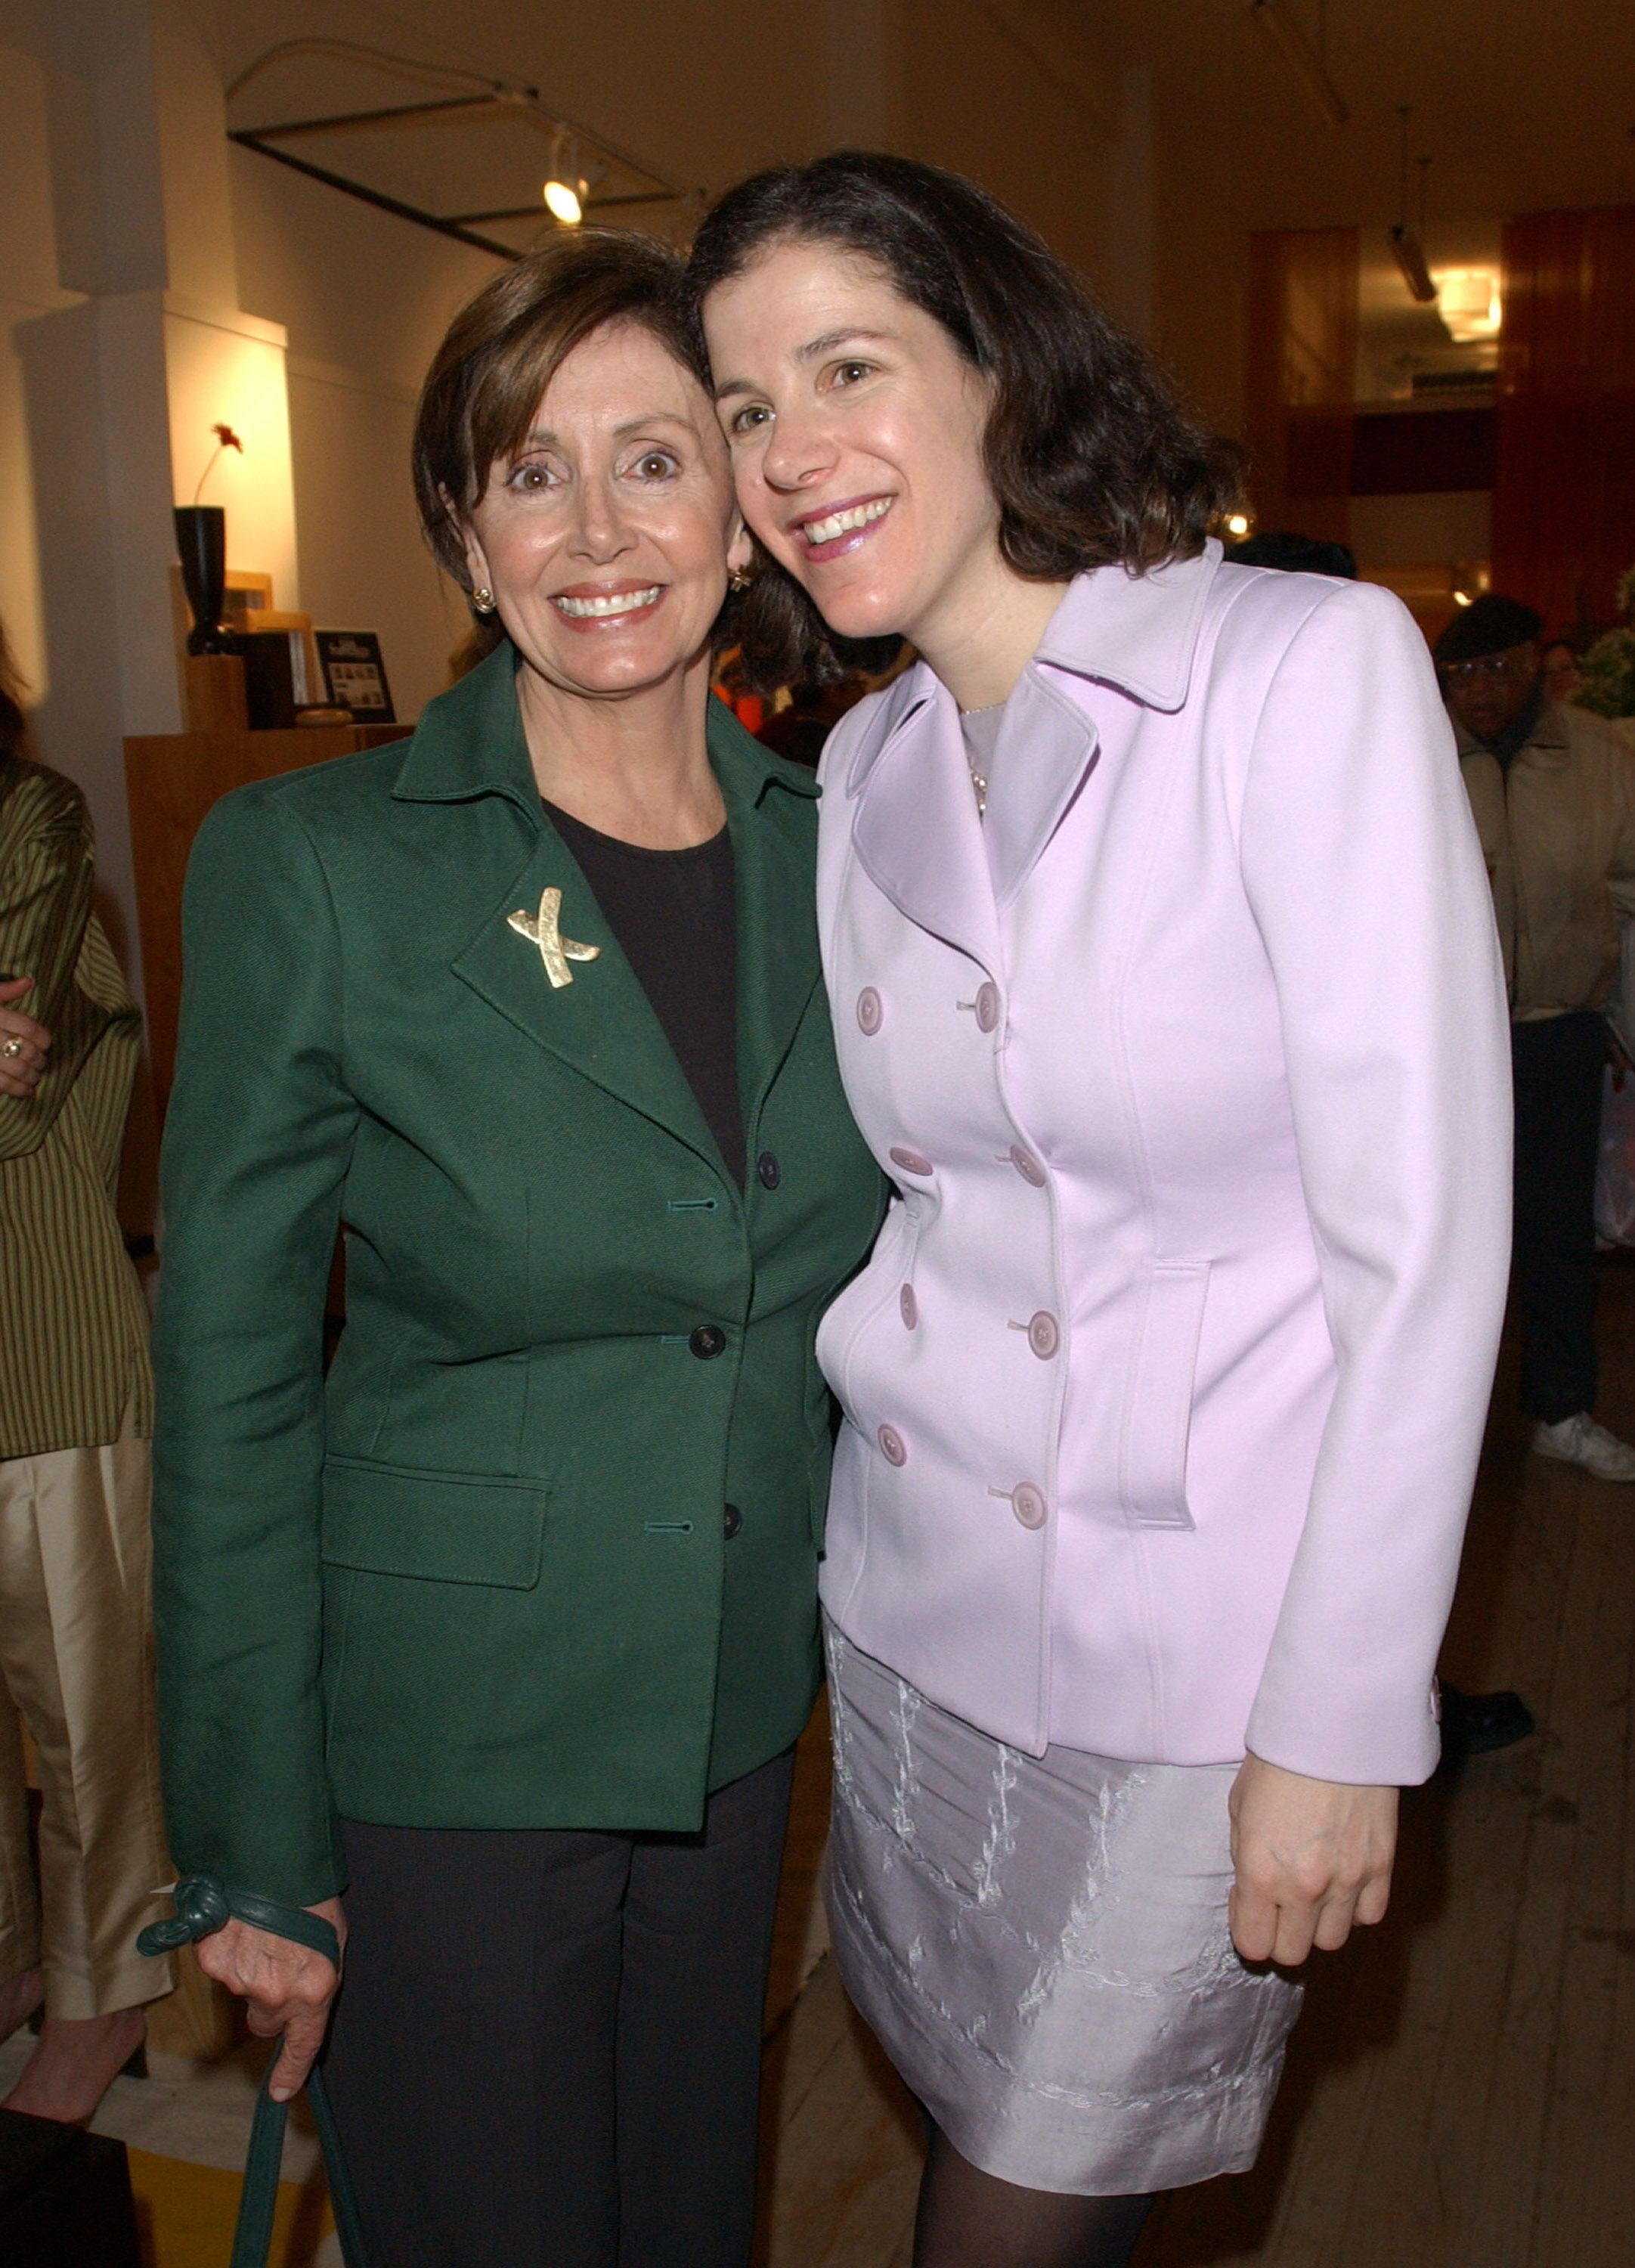 Nancy and her daughter Alexandra Pelosi at the premiere of Journeys with George, a documentary Alexandra directed covering George W. Bush's presidential campaign.